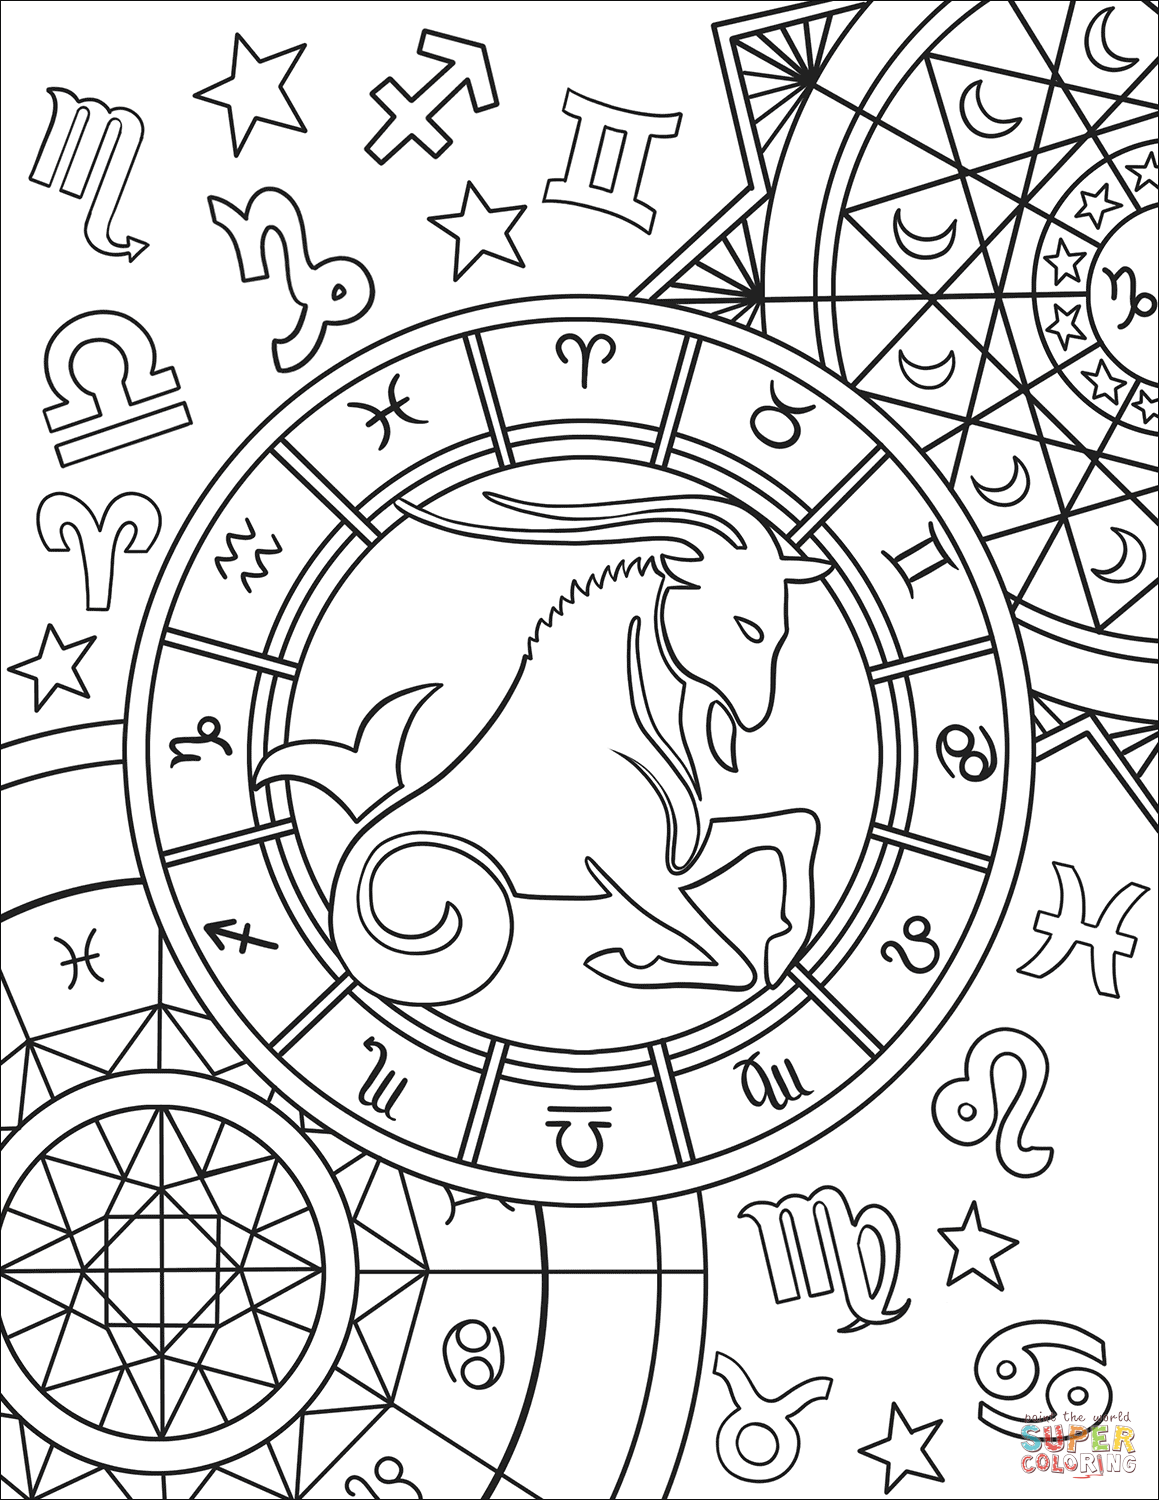 zodiac coloring pages art therapy coloring page astrology signs of zodiac 15 coloring zodiac pages